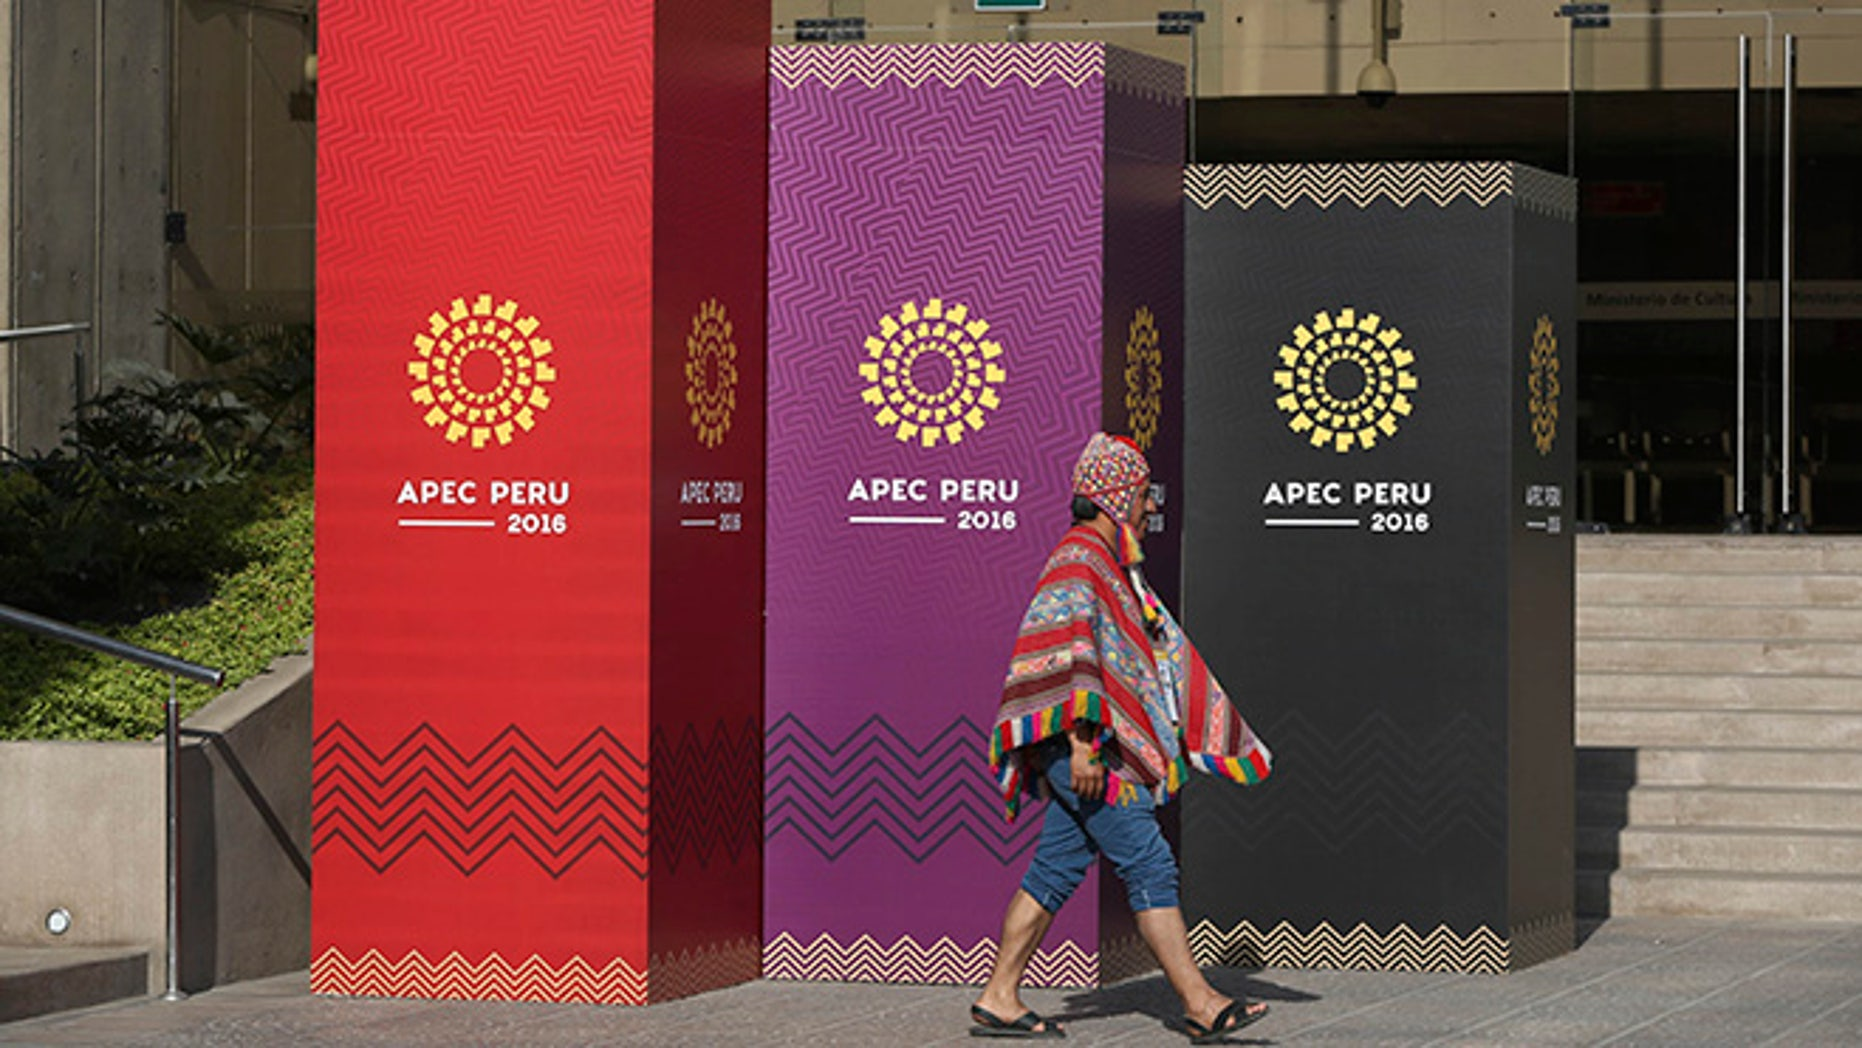 A man dressed in traditional Andean clothes walks past the logo of the APEC 2016 summit in Lima, Peru.